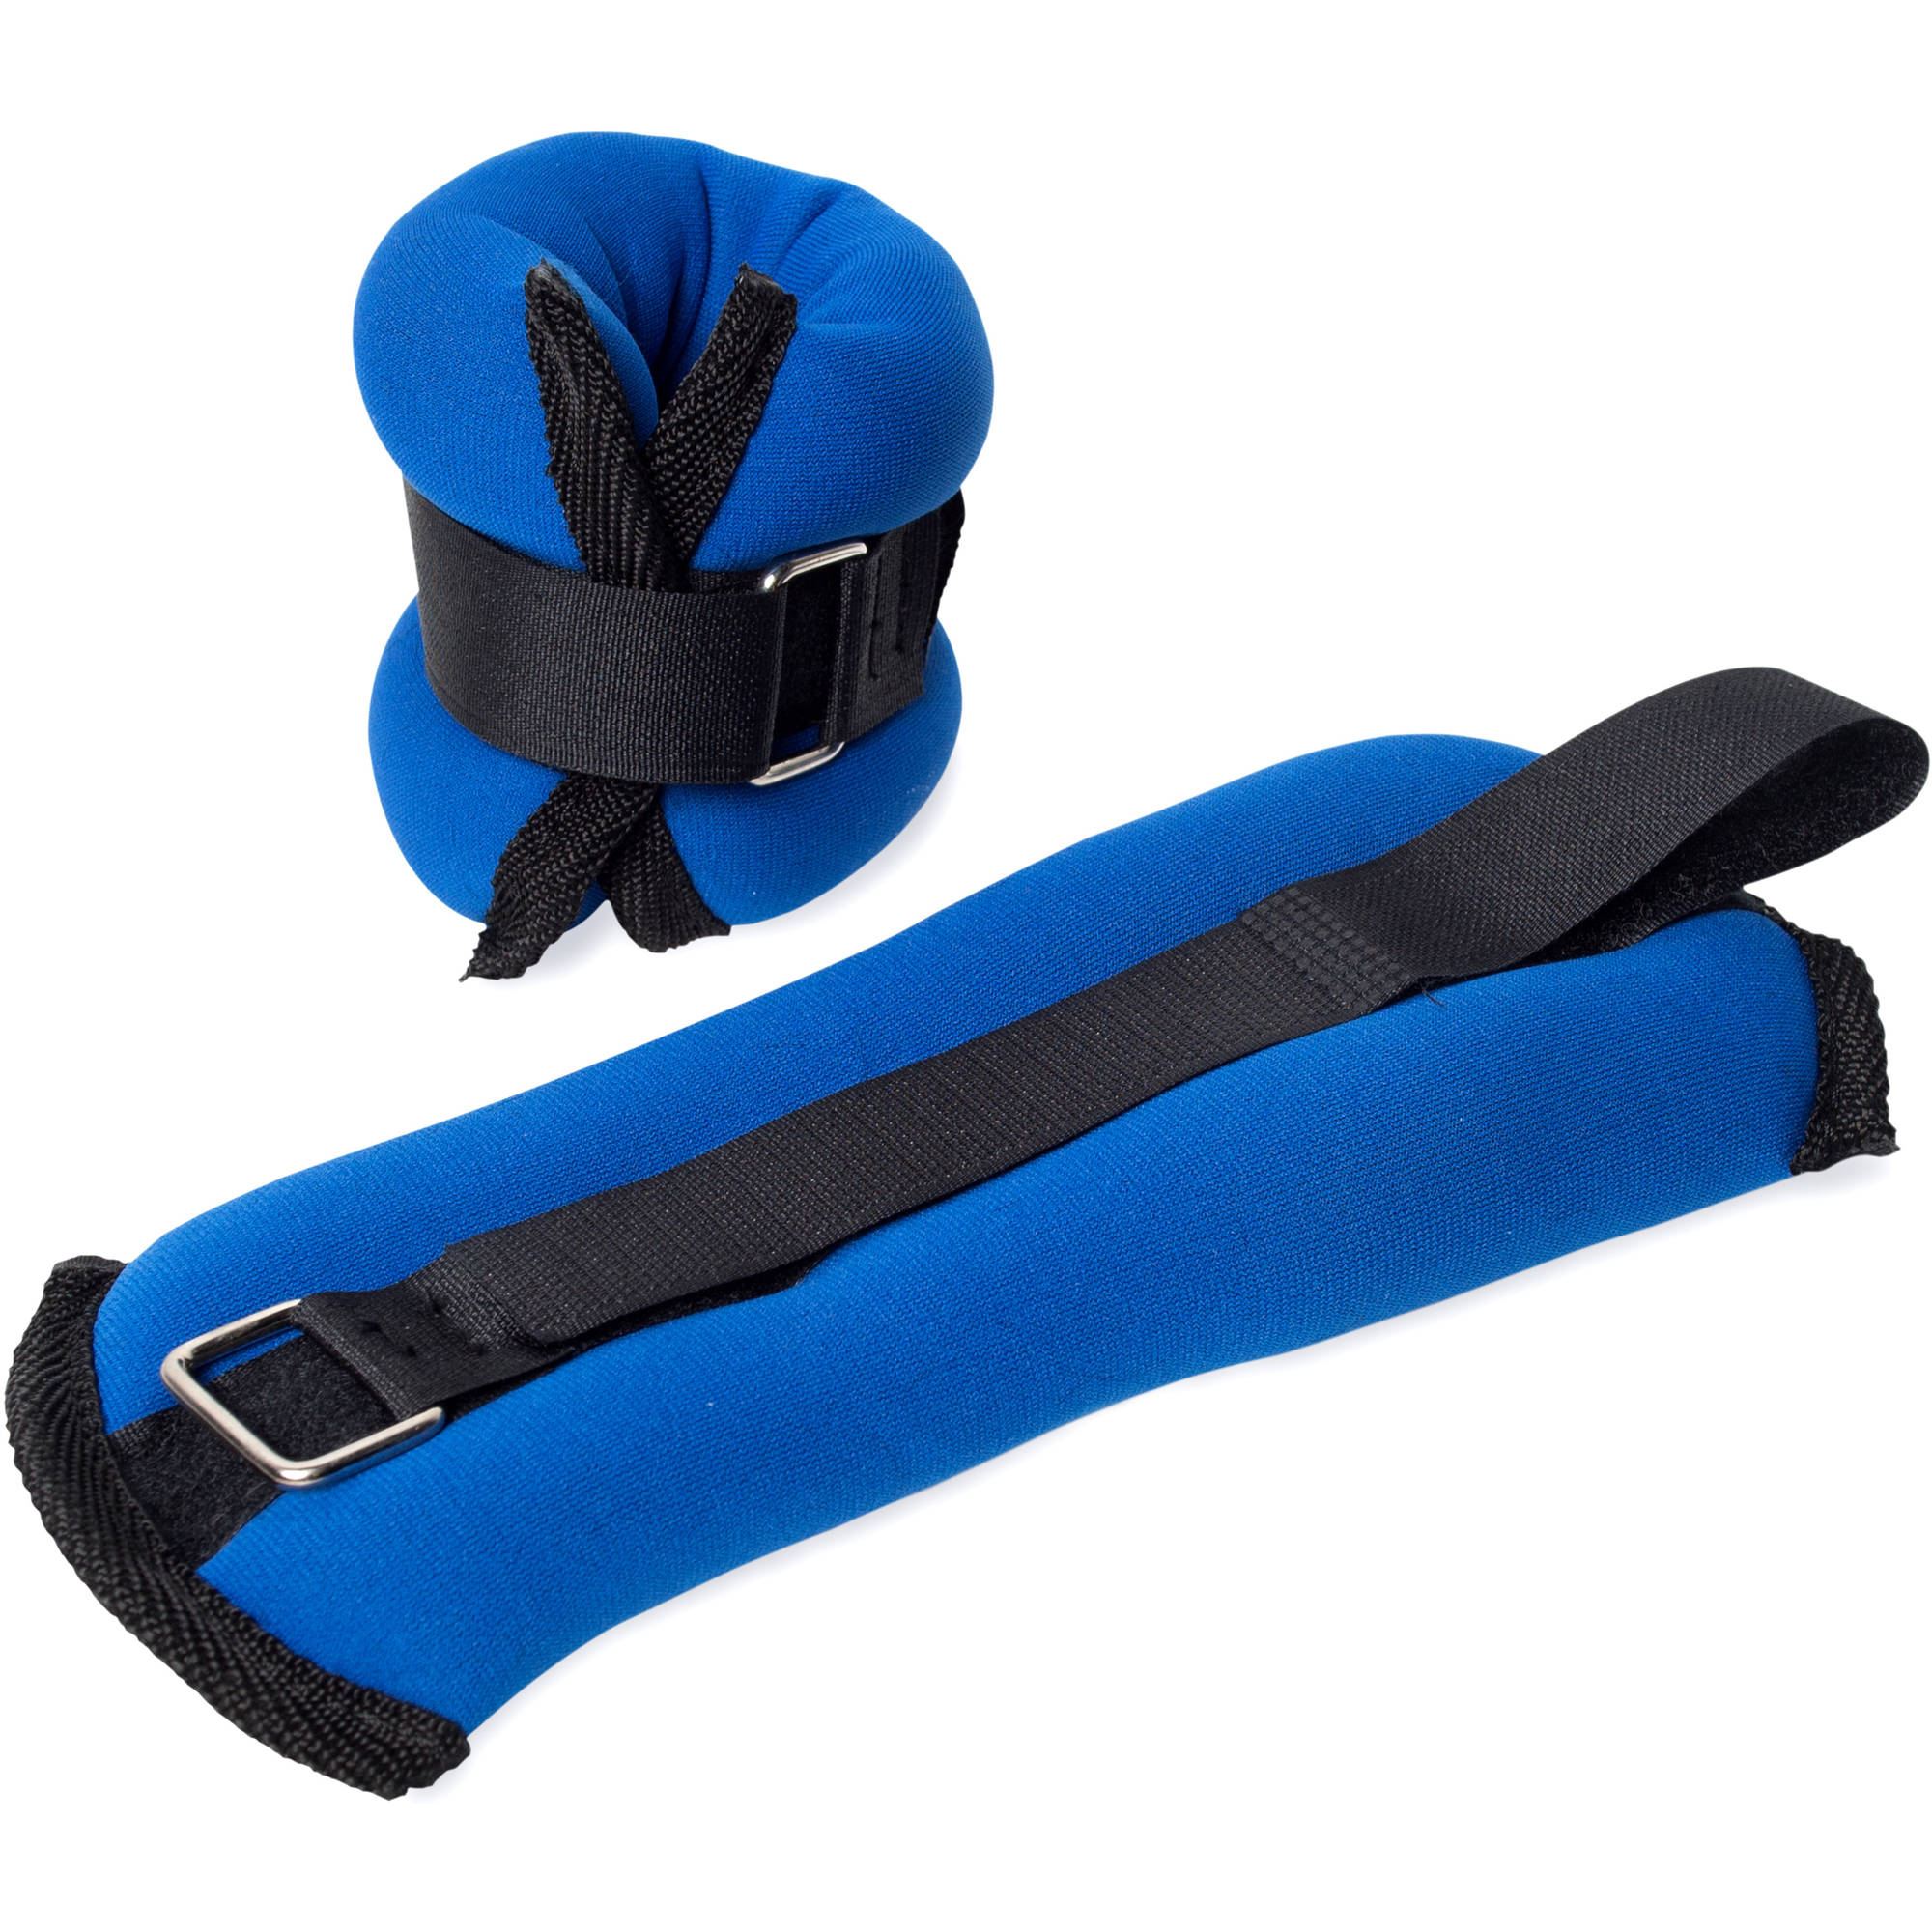 Tone Fitness 2lb Pair of Ankle/Wrist Weights